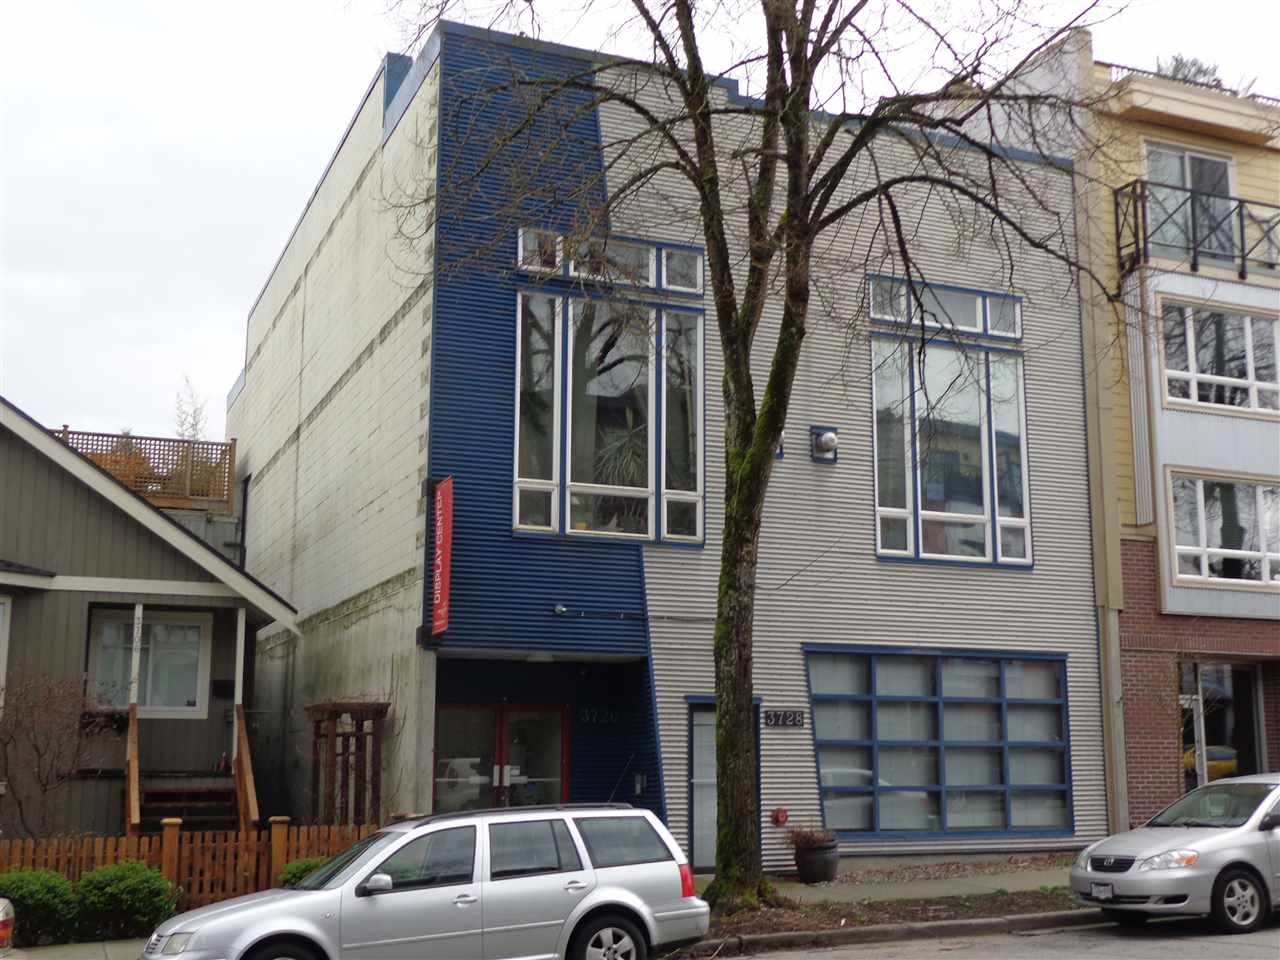 Photo 9: 1 3726 COMMERCIAL STREET in Vancouver: Victoria VE Condo for sale (Vancouver East)  : MLS(r) # R2037382